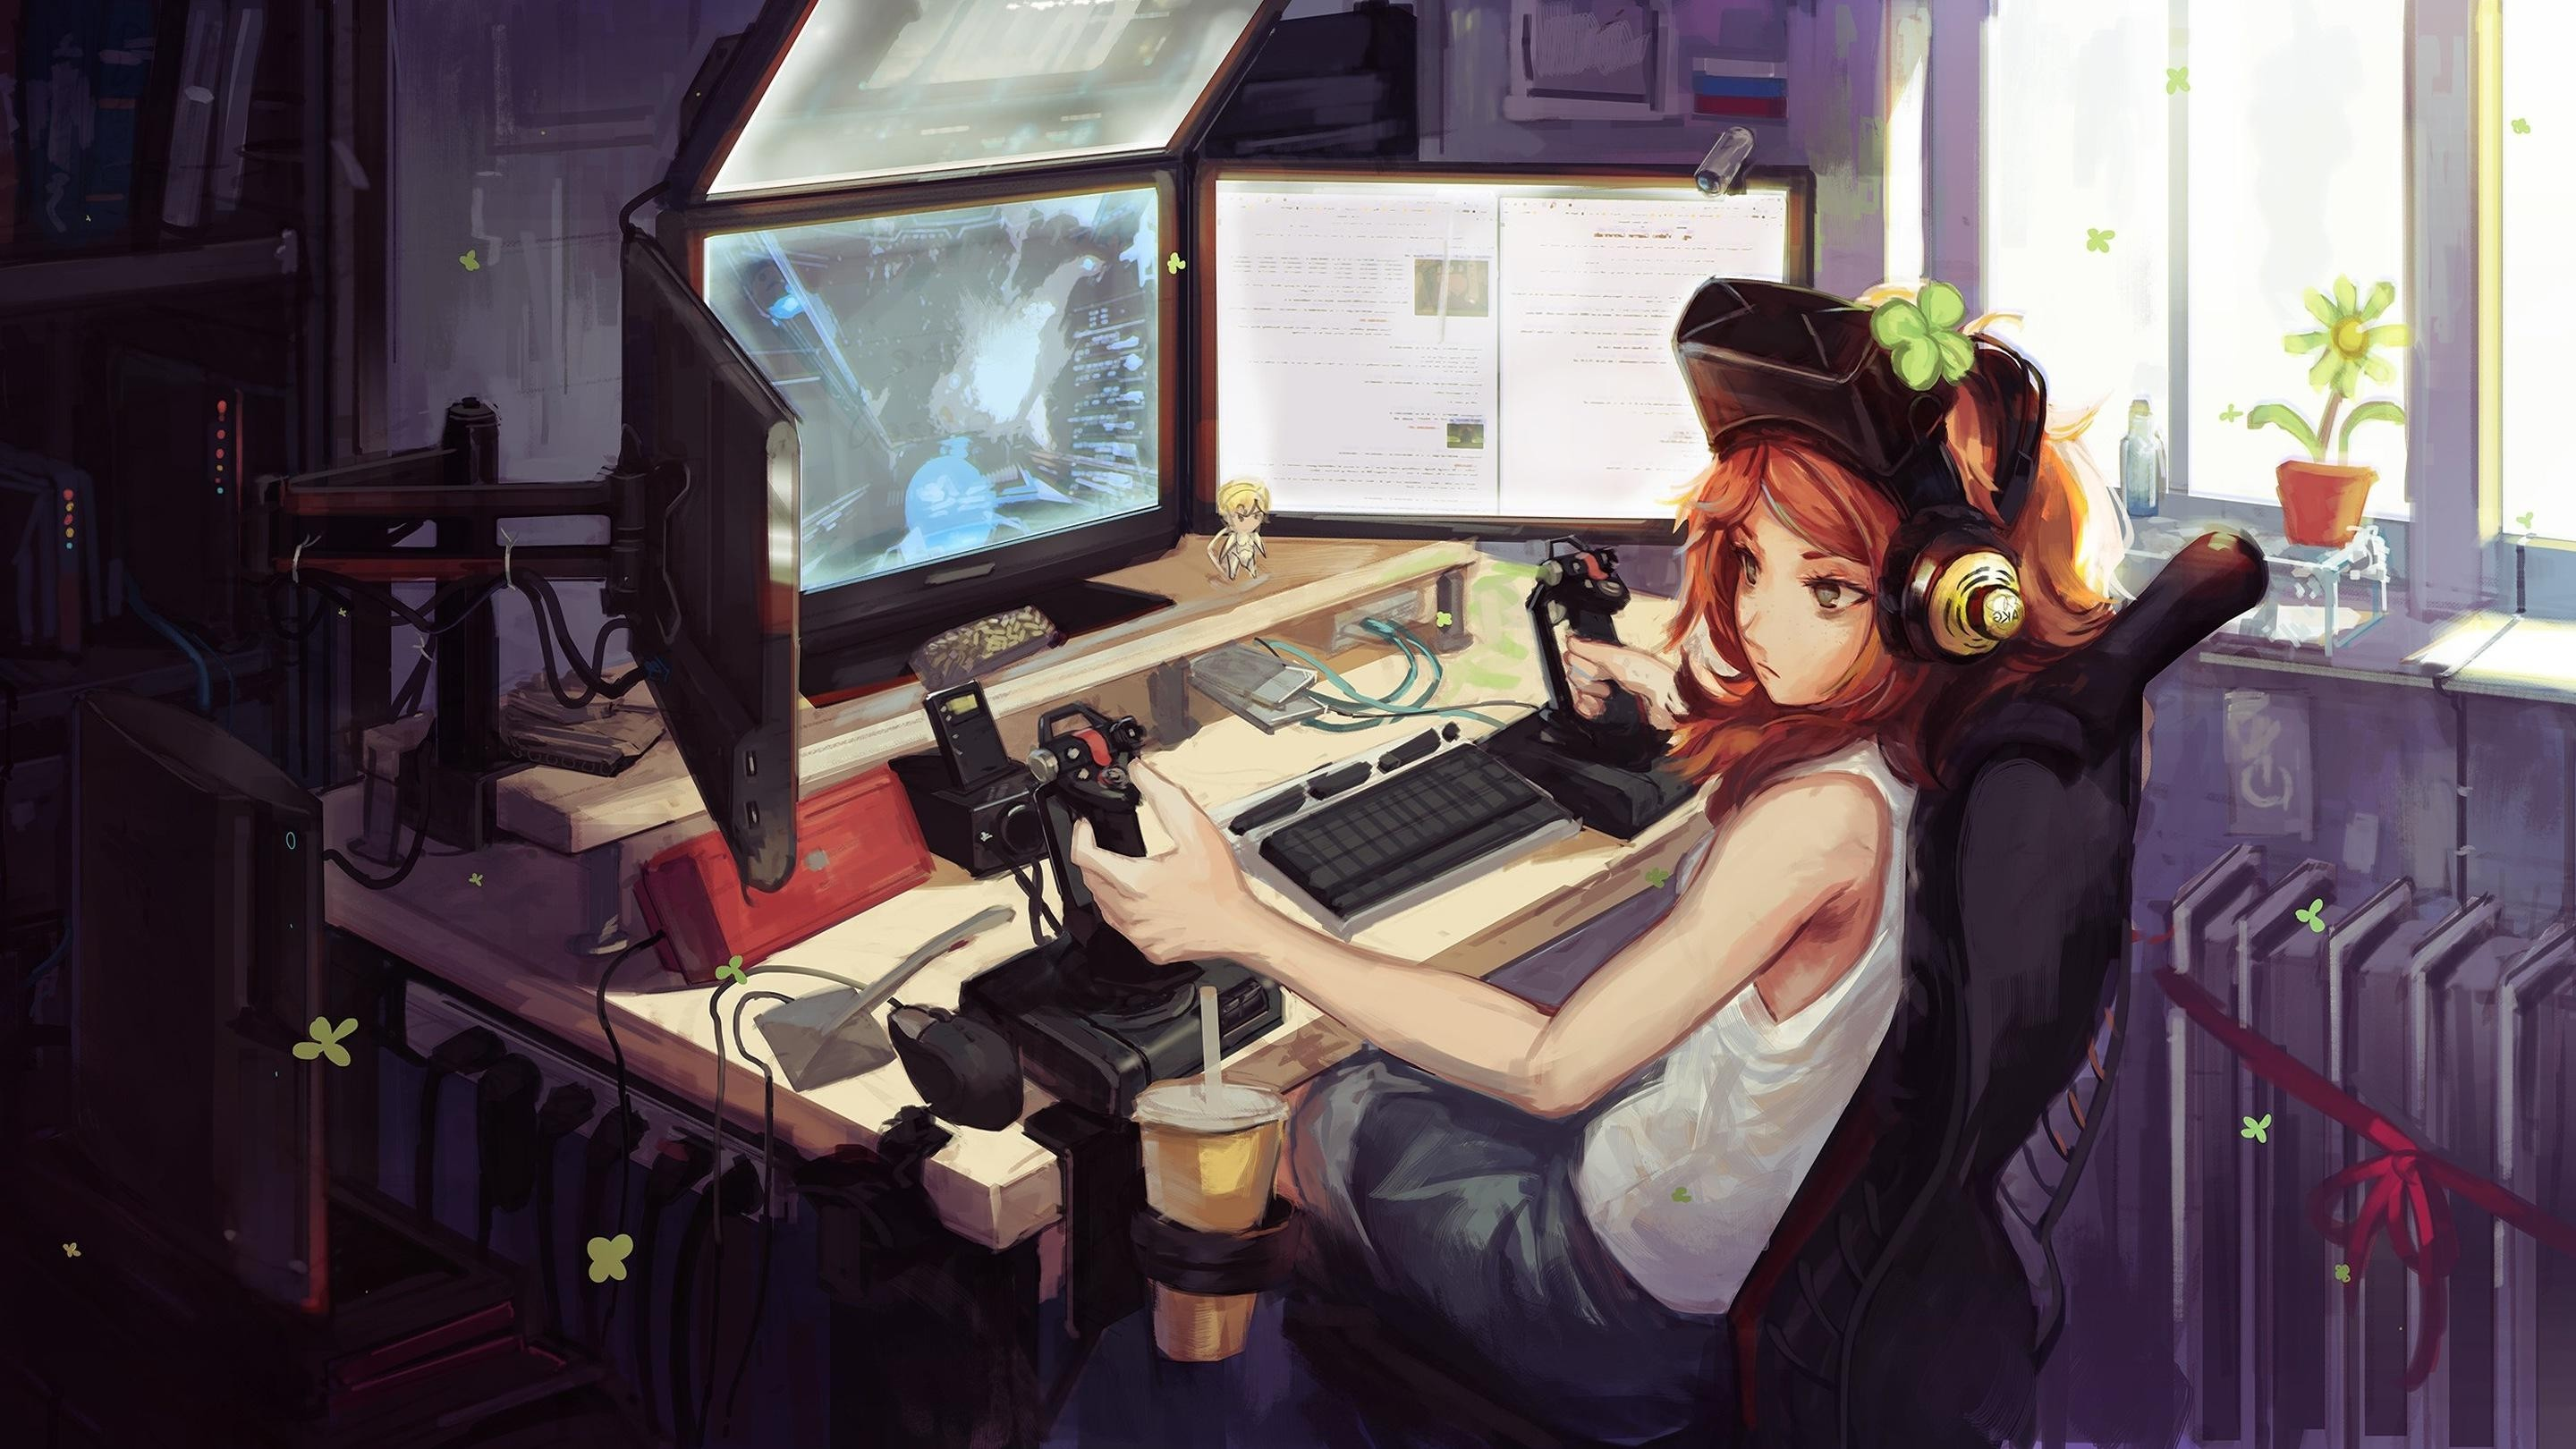 Res: 2880x1620, Awesome Anime Gamer Girl Wallpaper Download - best free gamer anime girl  art wallpaper hd images